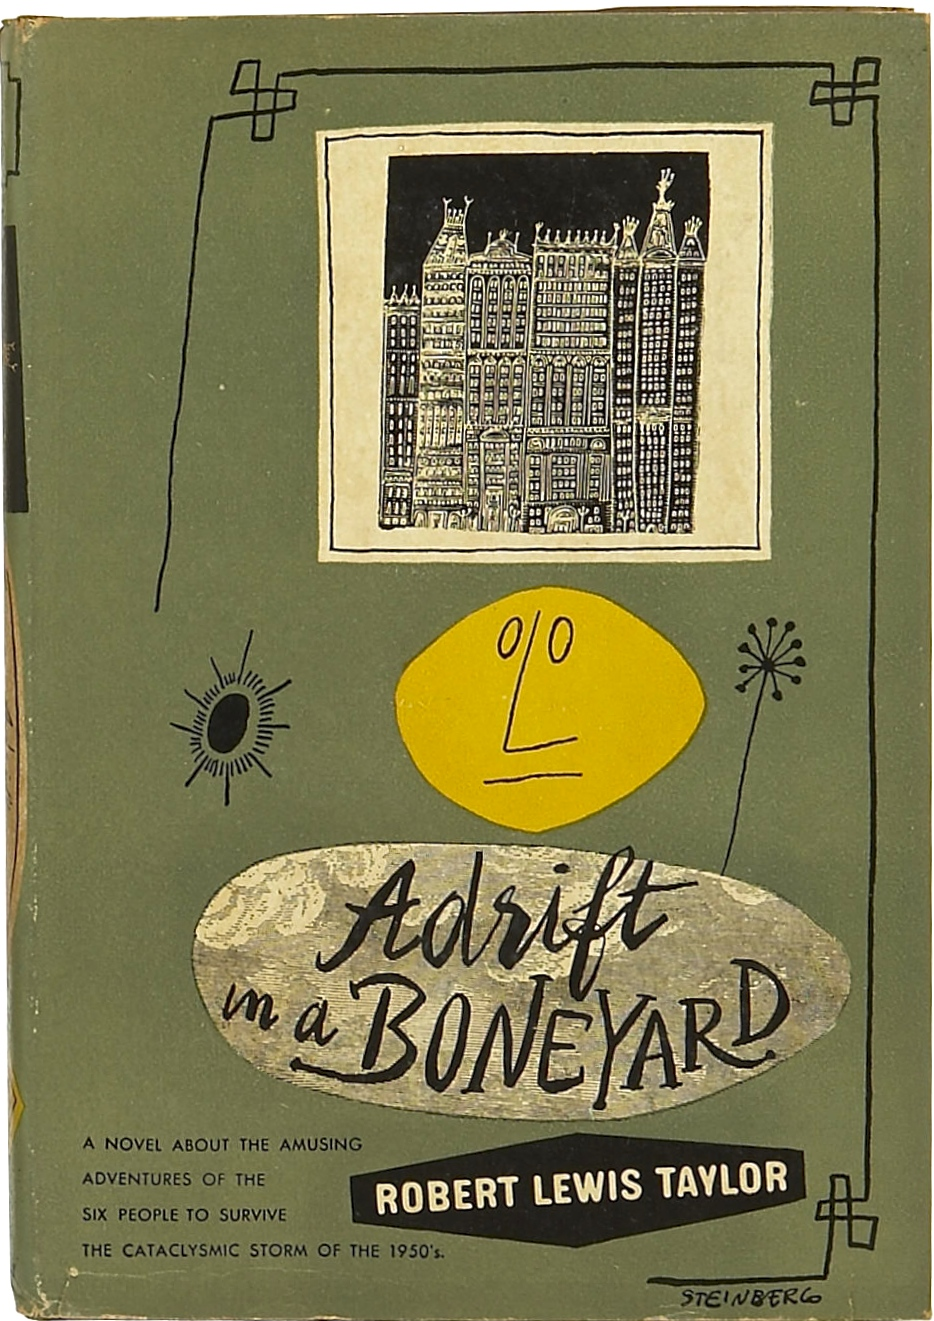 Robert Lewis Taylor. Adrift in a Boneyard. 1947. First edition.